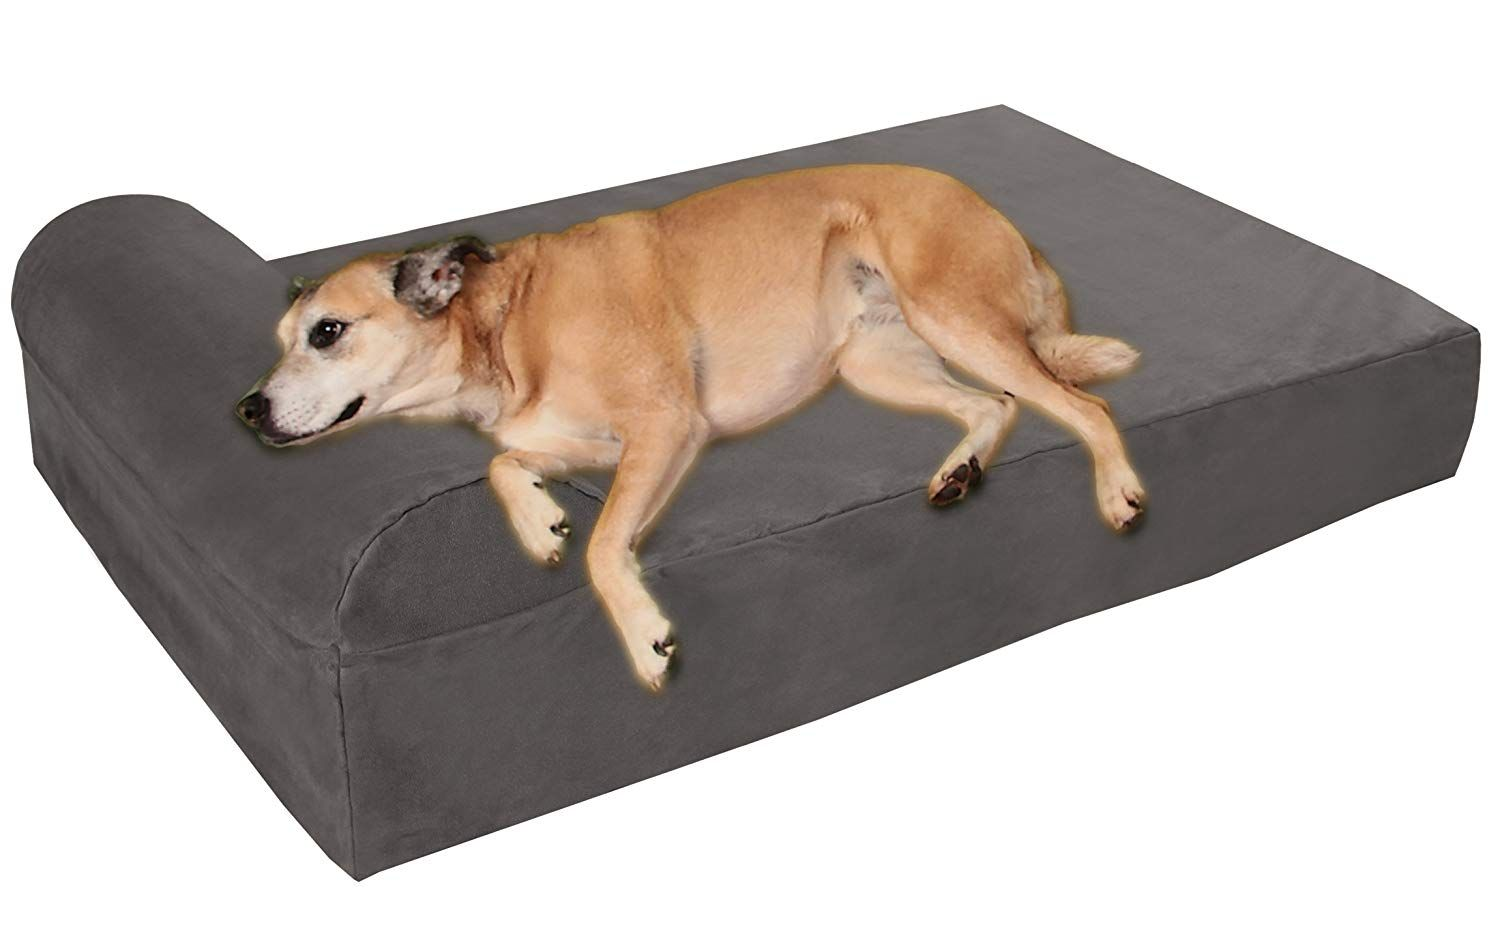 Are Orthopedic Dog Beds Really Beneficial Orthopedic Dog Bed Dog Bed Large Memory Foam Dog Bed